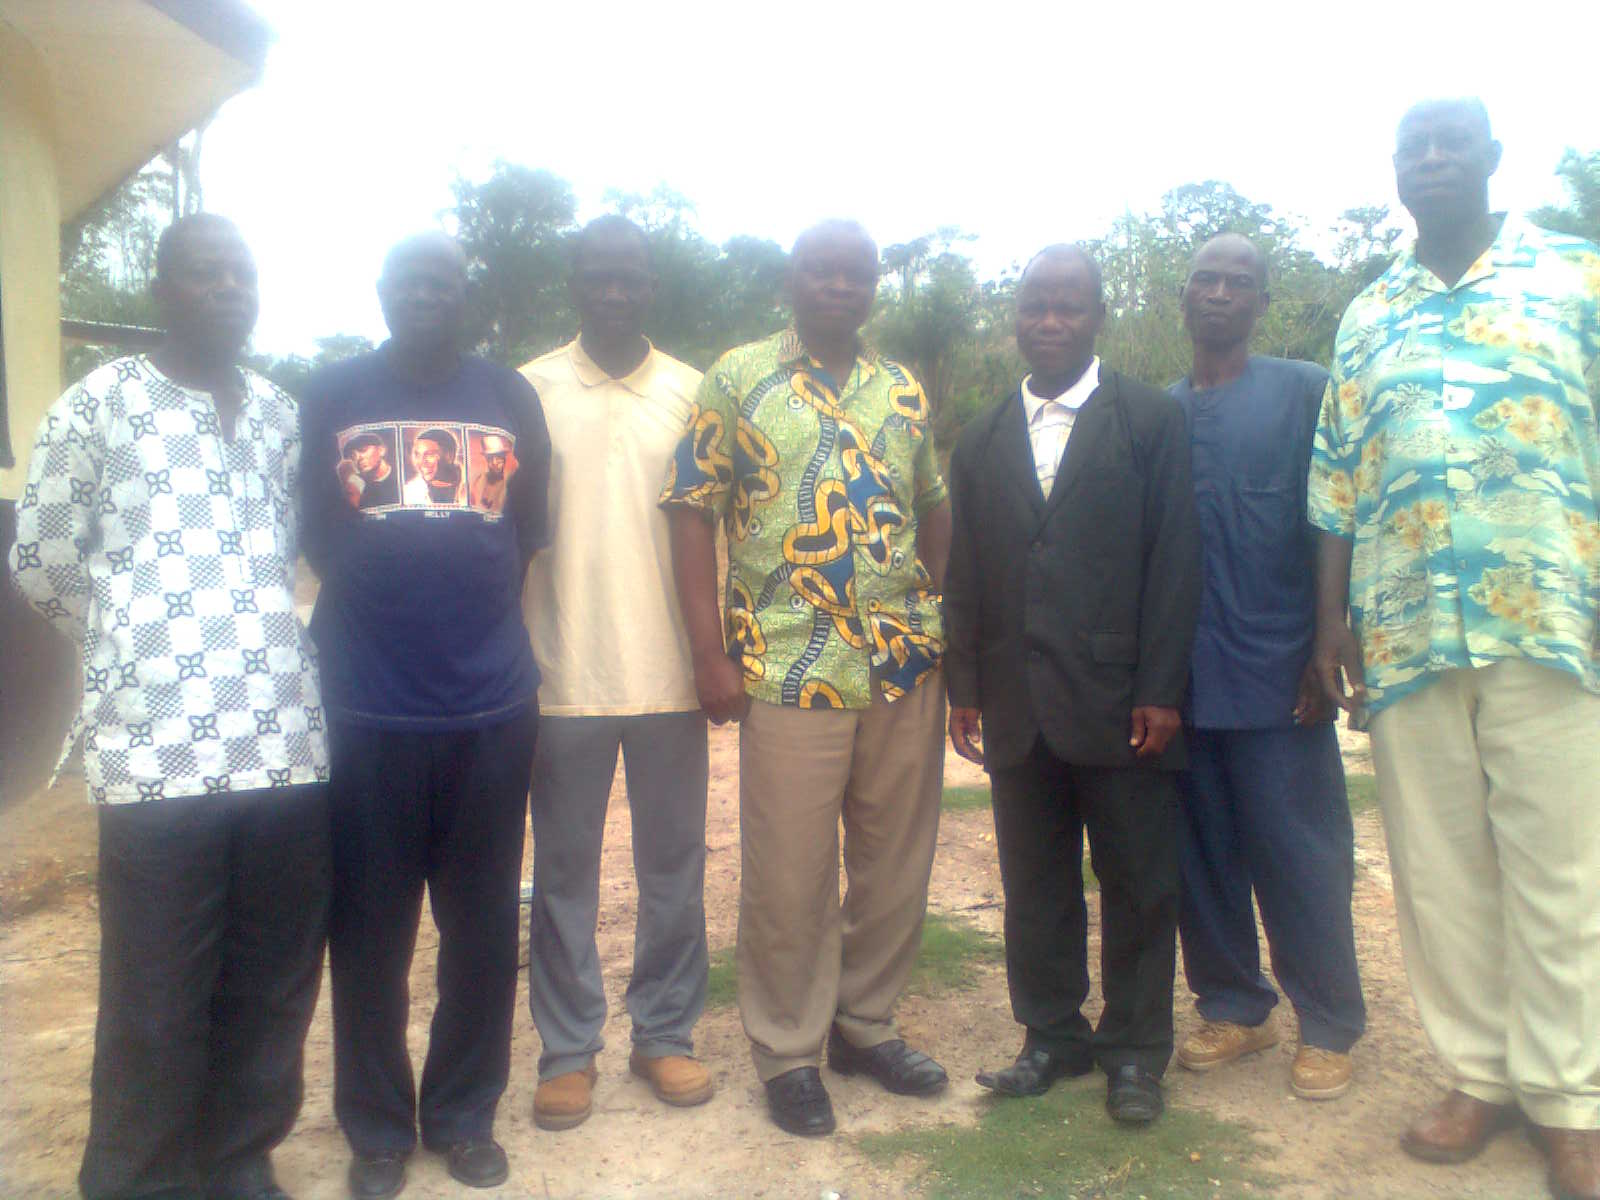 Local law enforcement near Nimba County in Liberia gathered for a JusticeMakers workshop about the rights of the accused living with HIV/AIDS. From left to right: 1) Police Commander a. Cyrus Marwon 2) Cllr. Gideon Tozay, Clerk of Debt Court 3) Arthur Queyaker 4) Cllr. Cooper Gweh, Associate Magistrate 5) JusticeMakers C. Christian Zarweah 6) Staff at the City Council Hon.Stanley Bella, and 7) Attorney Julius Monluo.